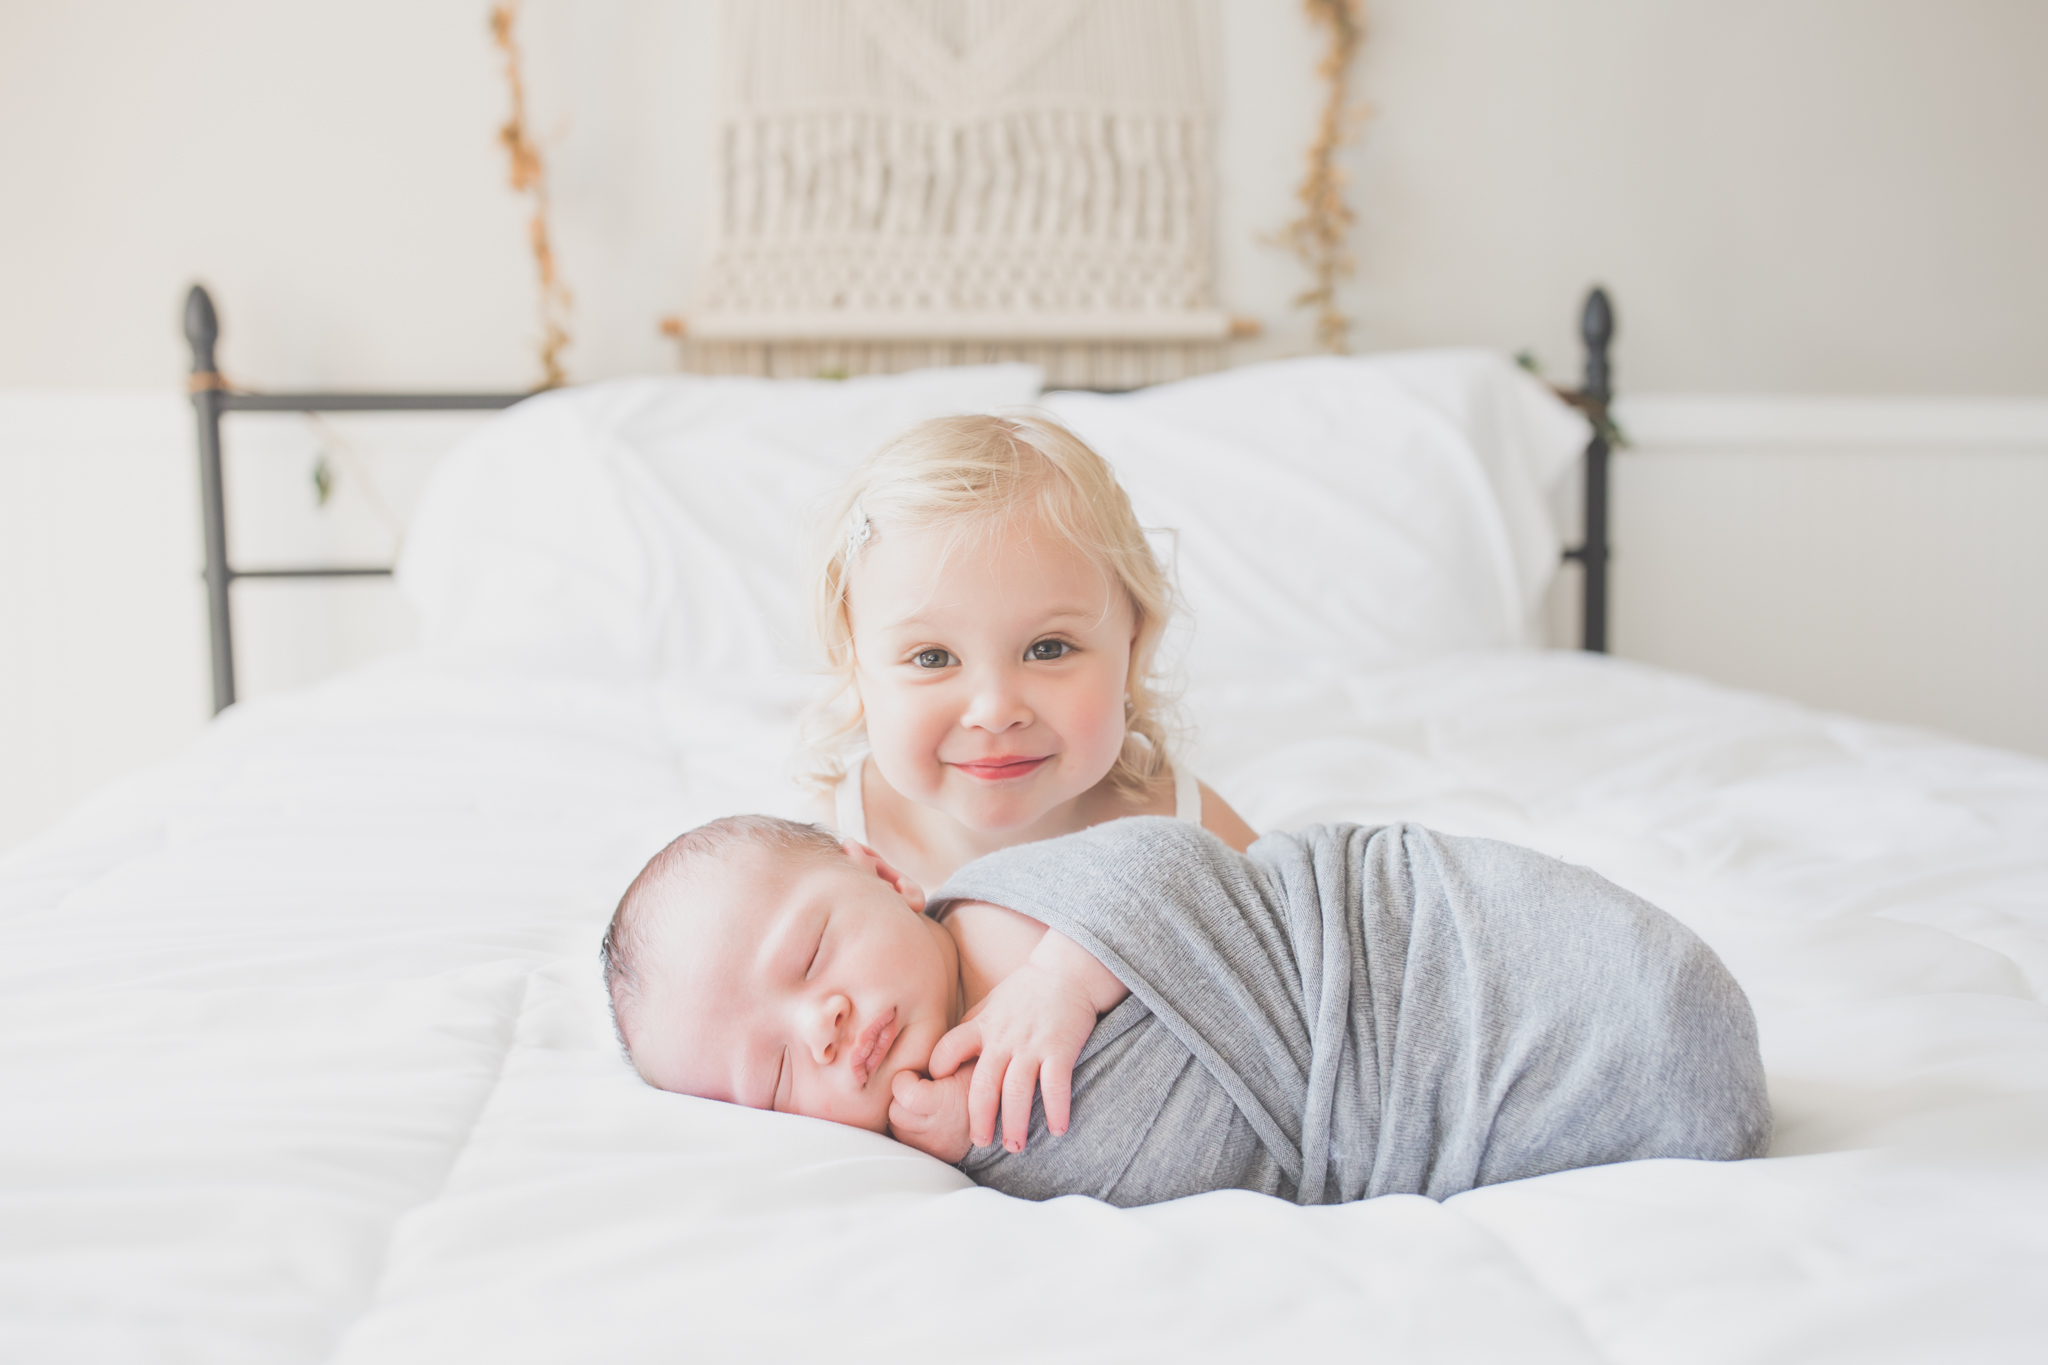 Sibling photos Newborn session photographer lifestyle studio - Cara Peterson Photography Rockford IL-1-2.jpg